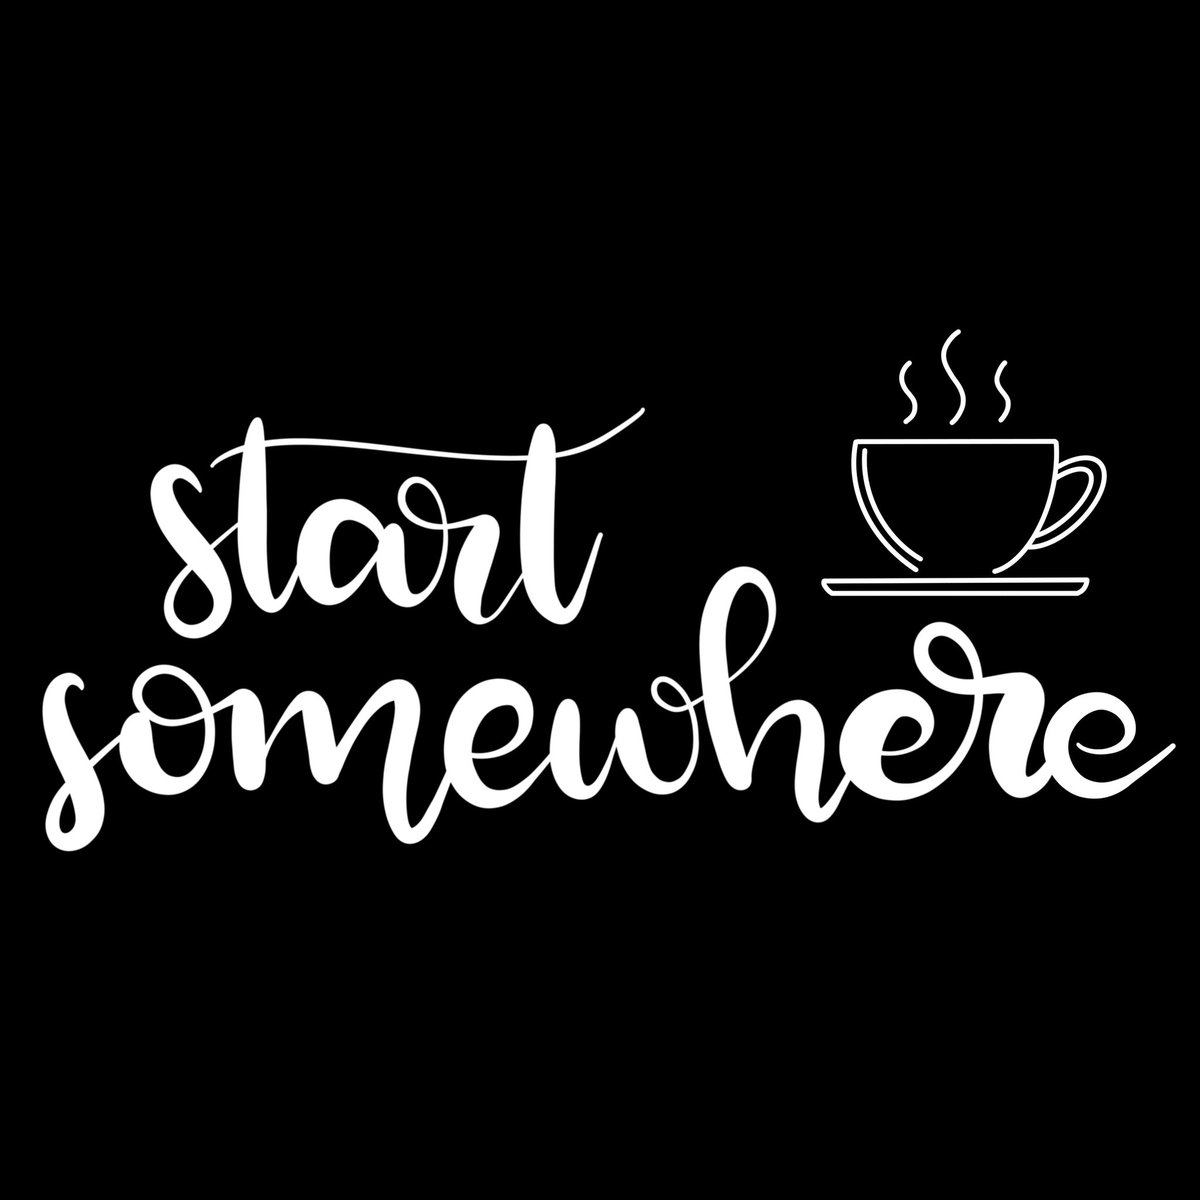 Start where you are, use what you have, do what you can  Hand lettering practice on my iPad with @procreate . . . . #lettering #brushlettering #create #start #coffee #calligraphy #ipad #procreate #letteringnewbie #letteringlove #letteringcommunity #letteringbeginner #type pic.twitter.com/nIbWxIplEV